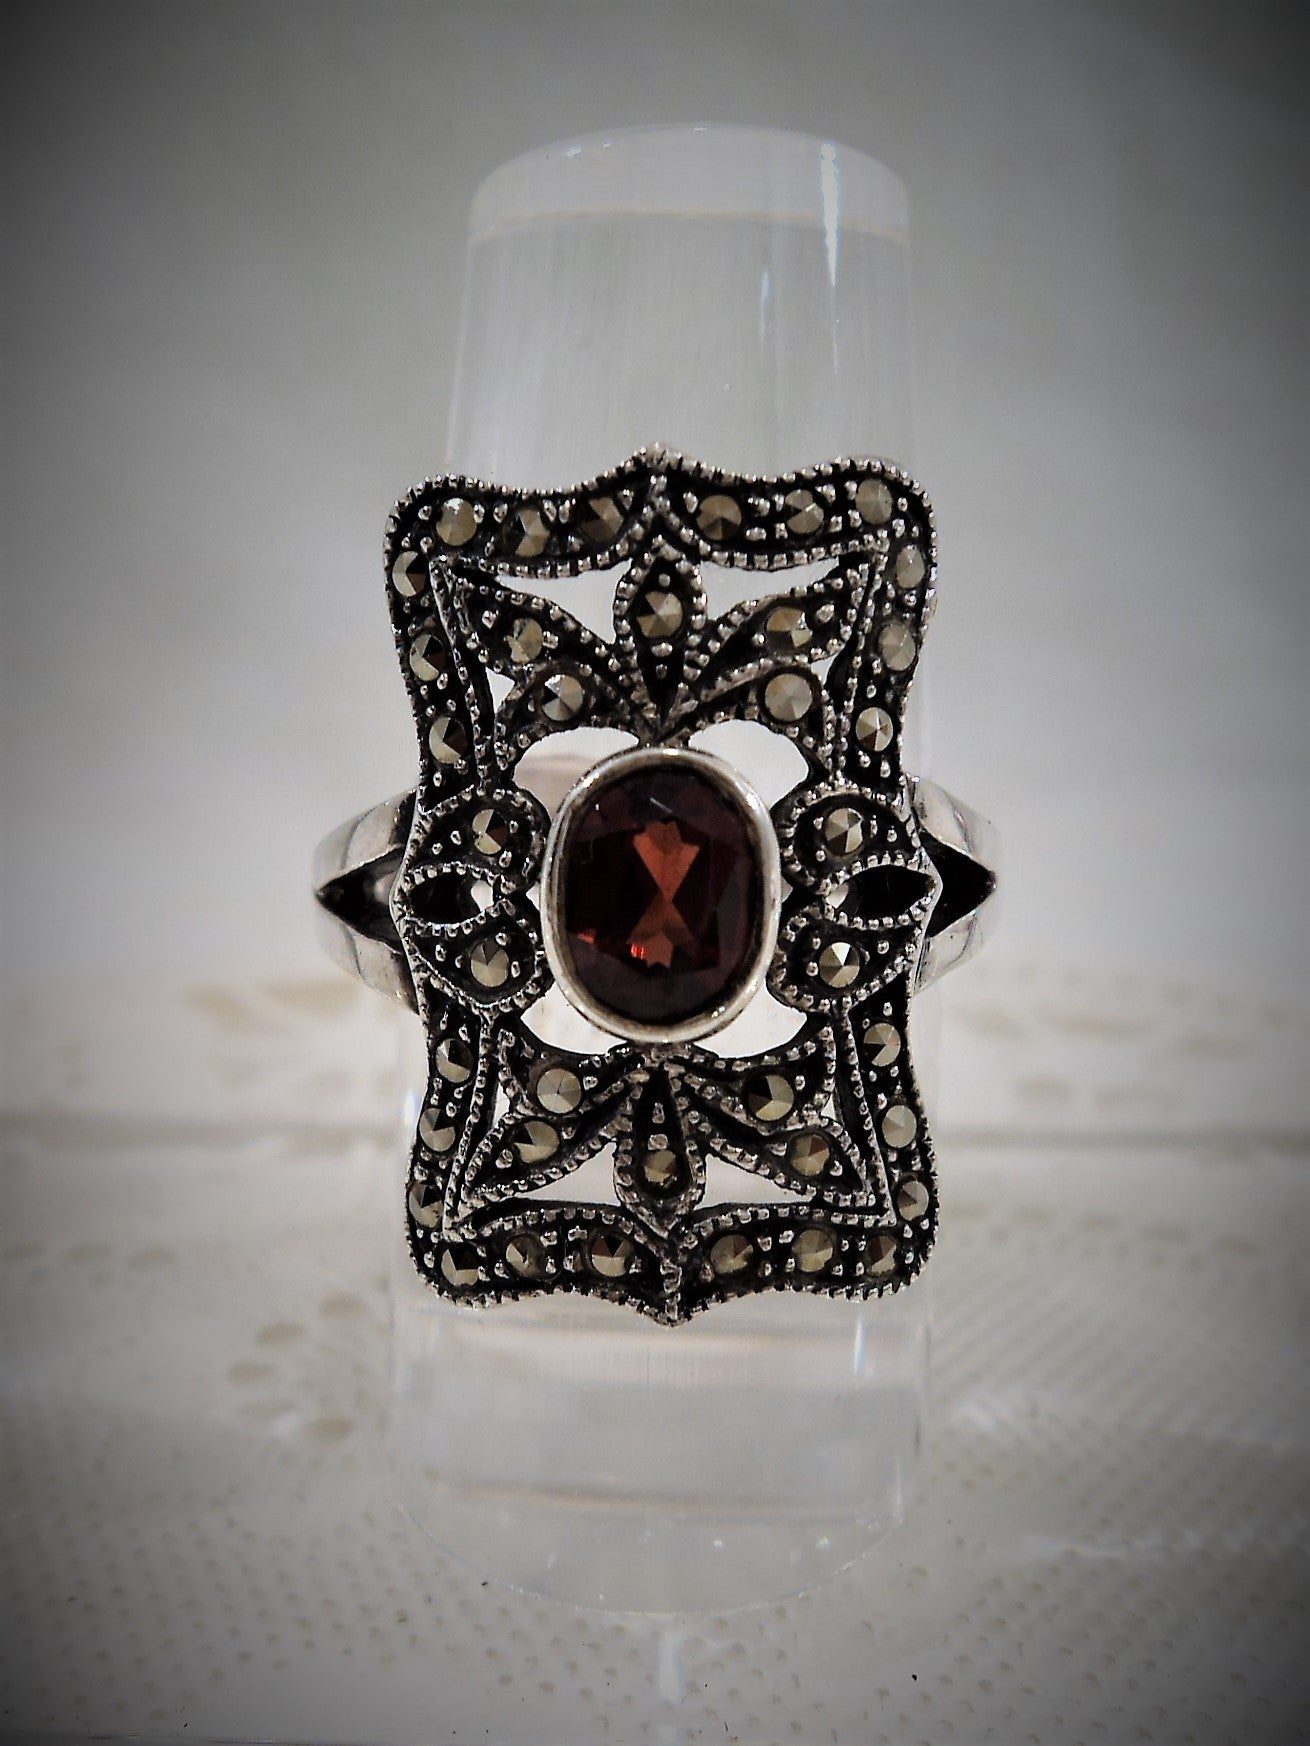 Vintage Marcasite Cocktail Ring with Garnet Center